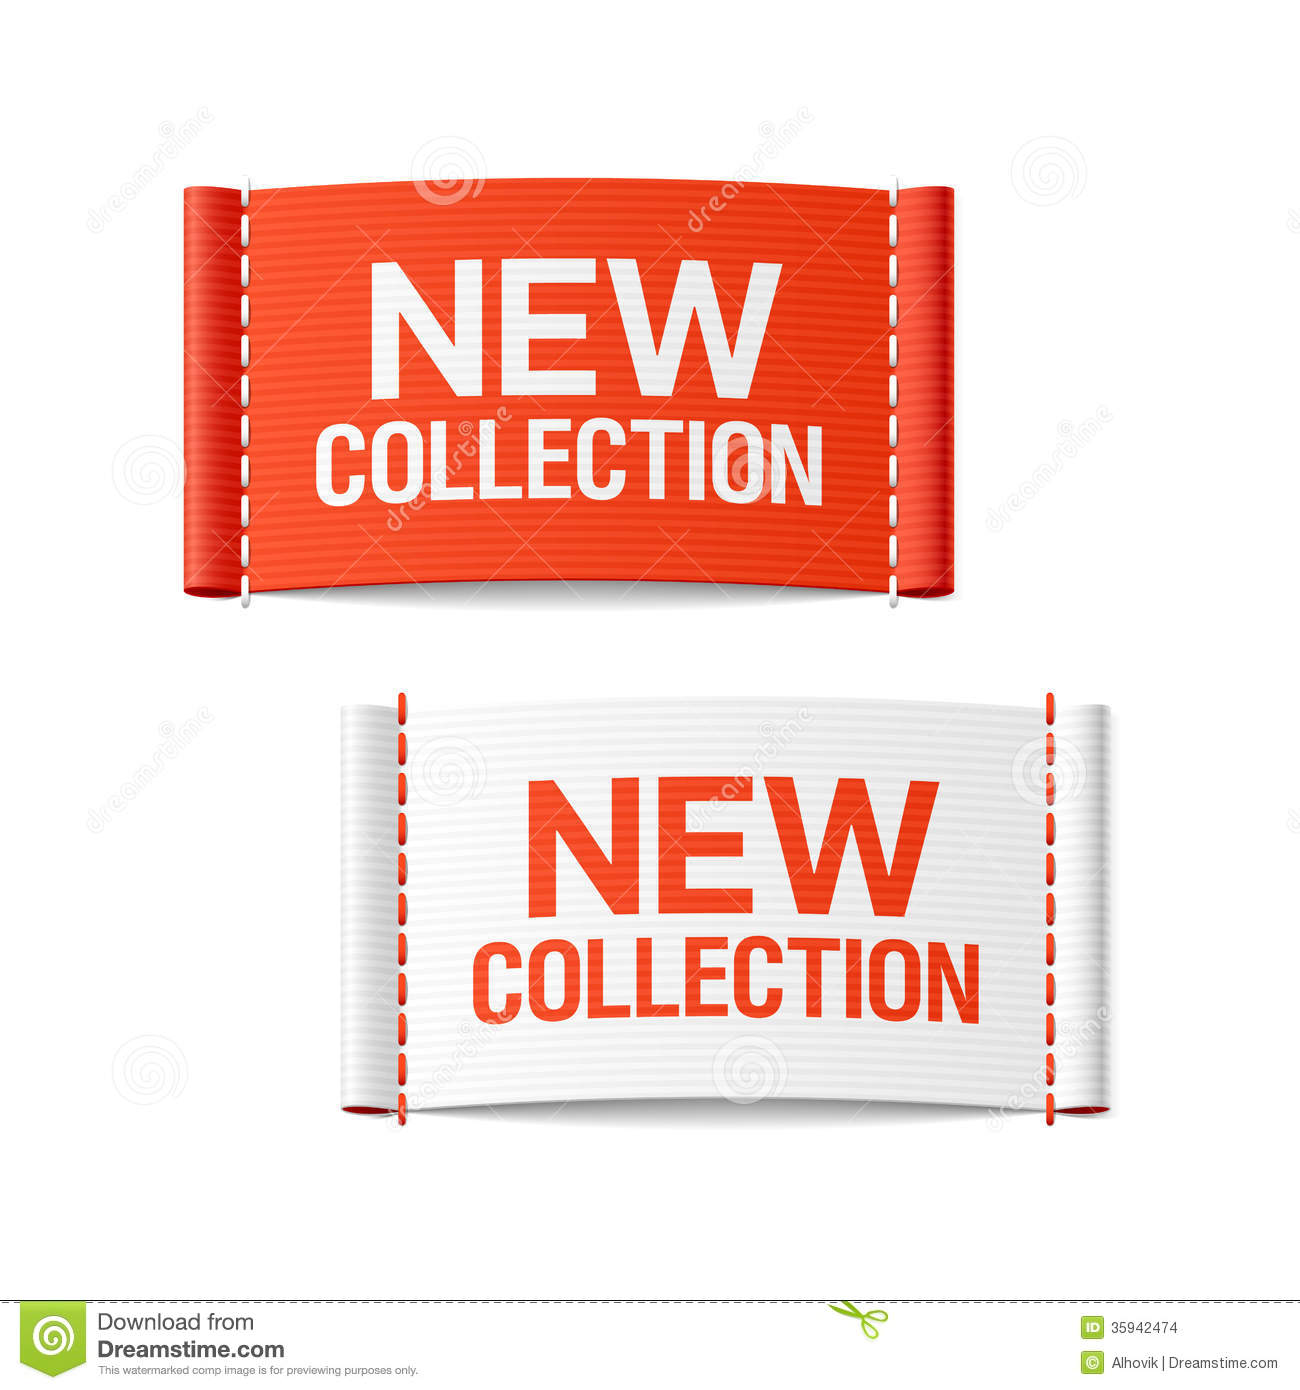 New Collection Clothing Labels Stock Images - Image: 35942474